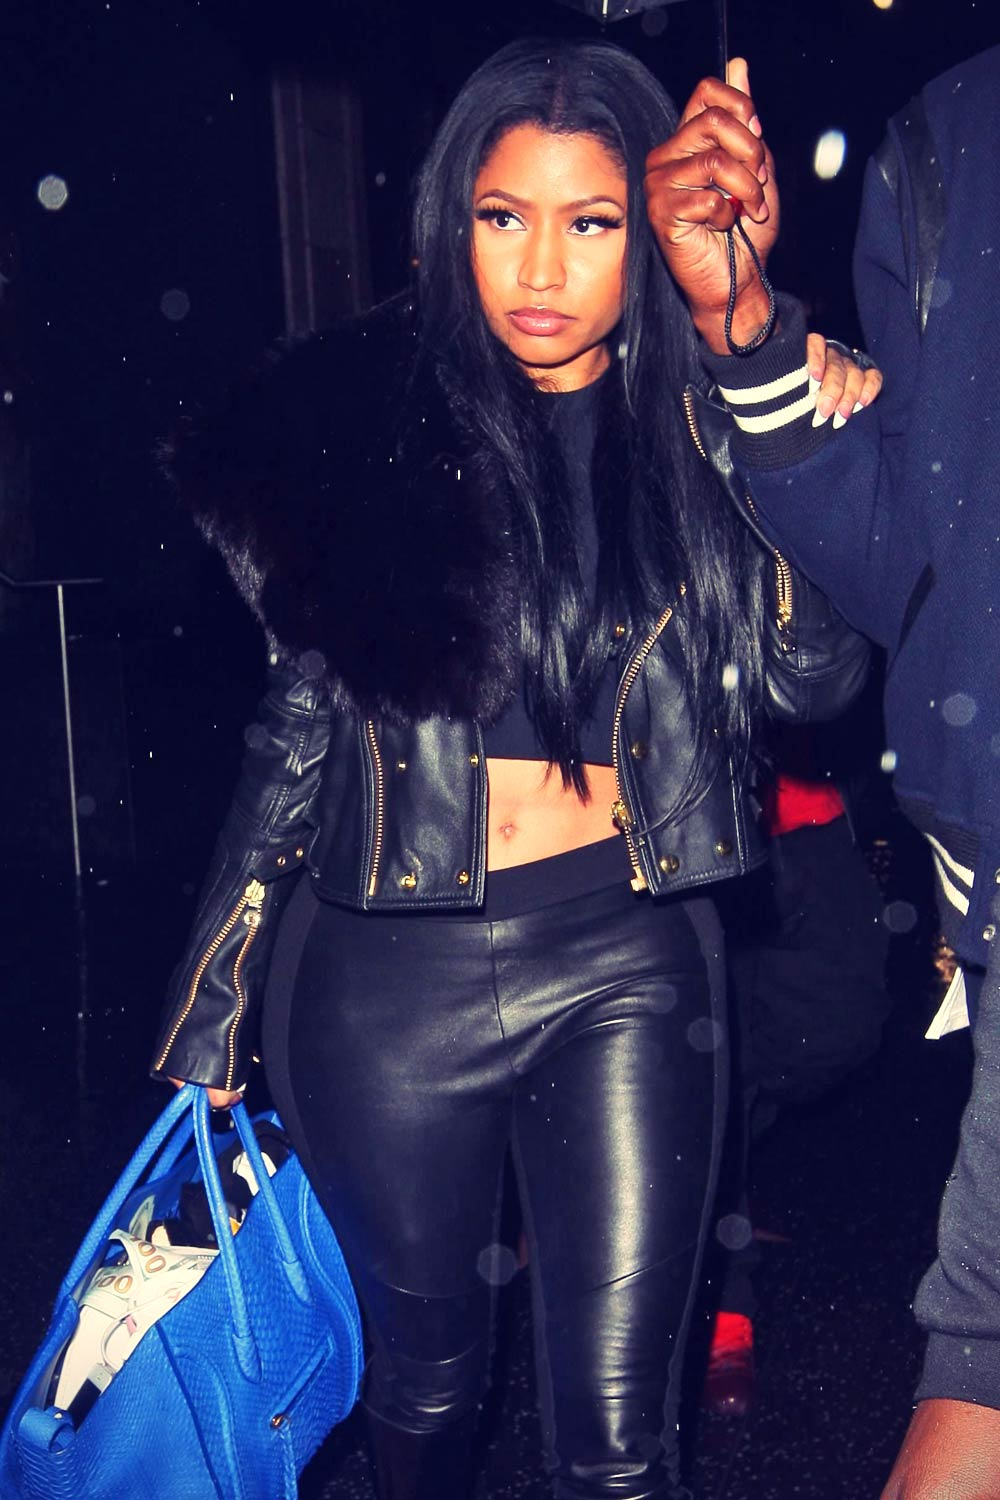 Nicki Minaj at  Katsuya restaurant